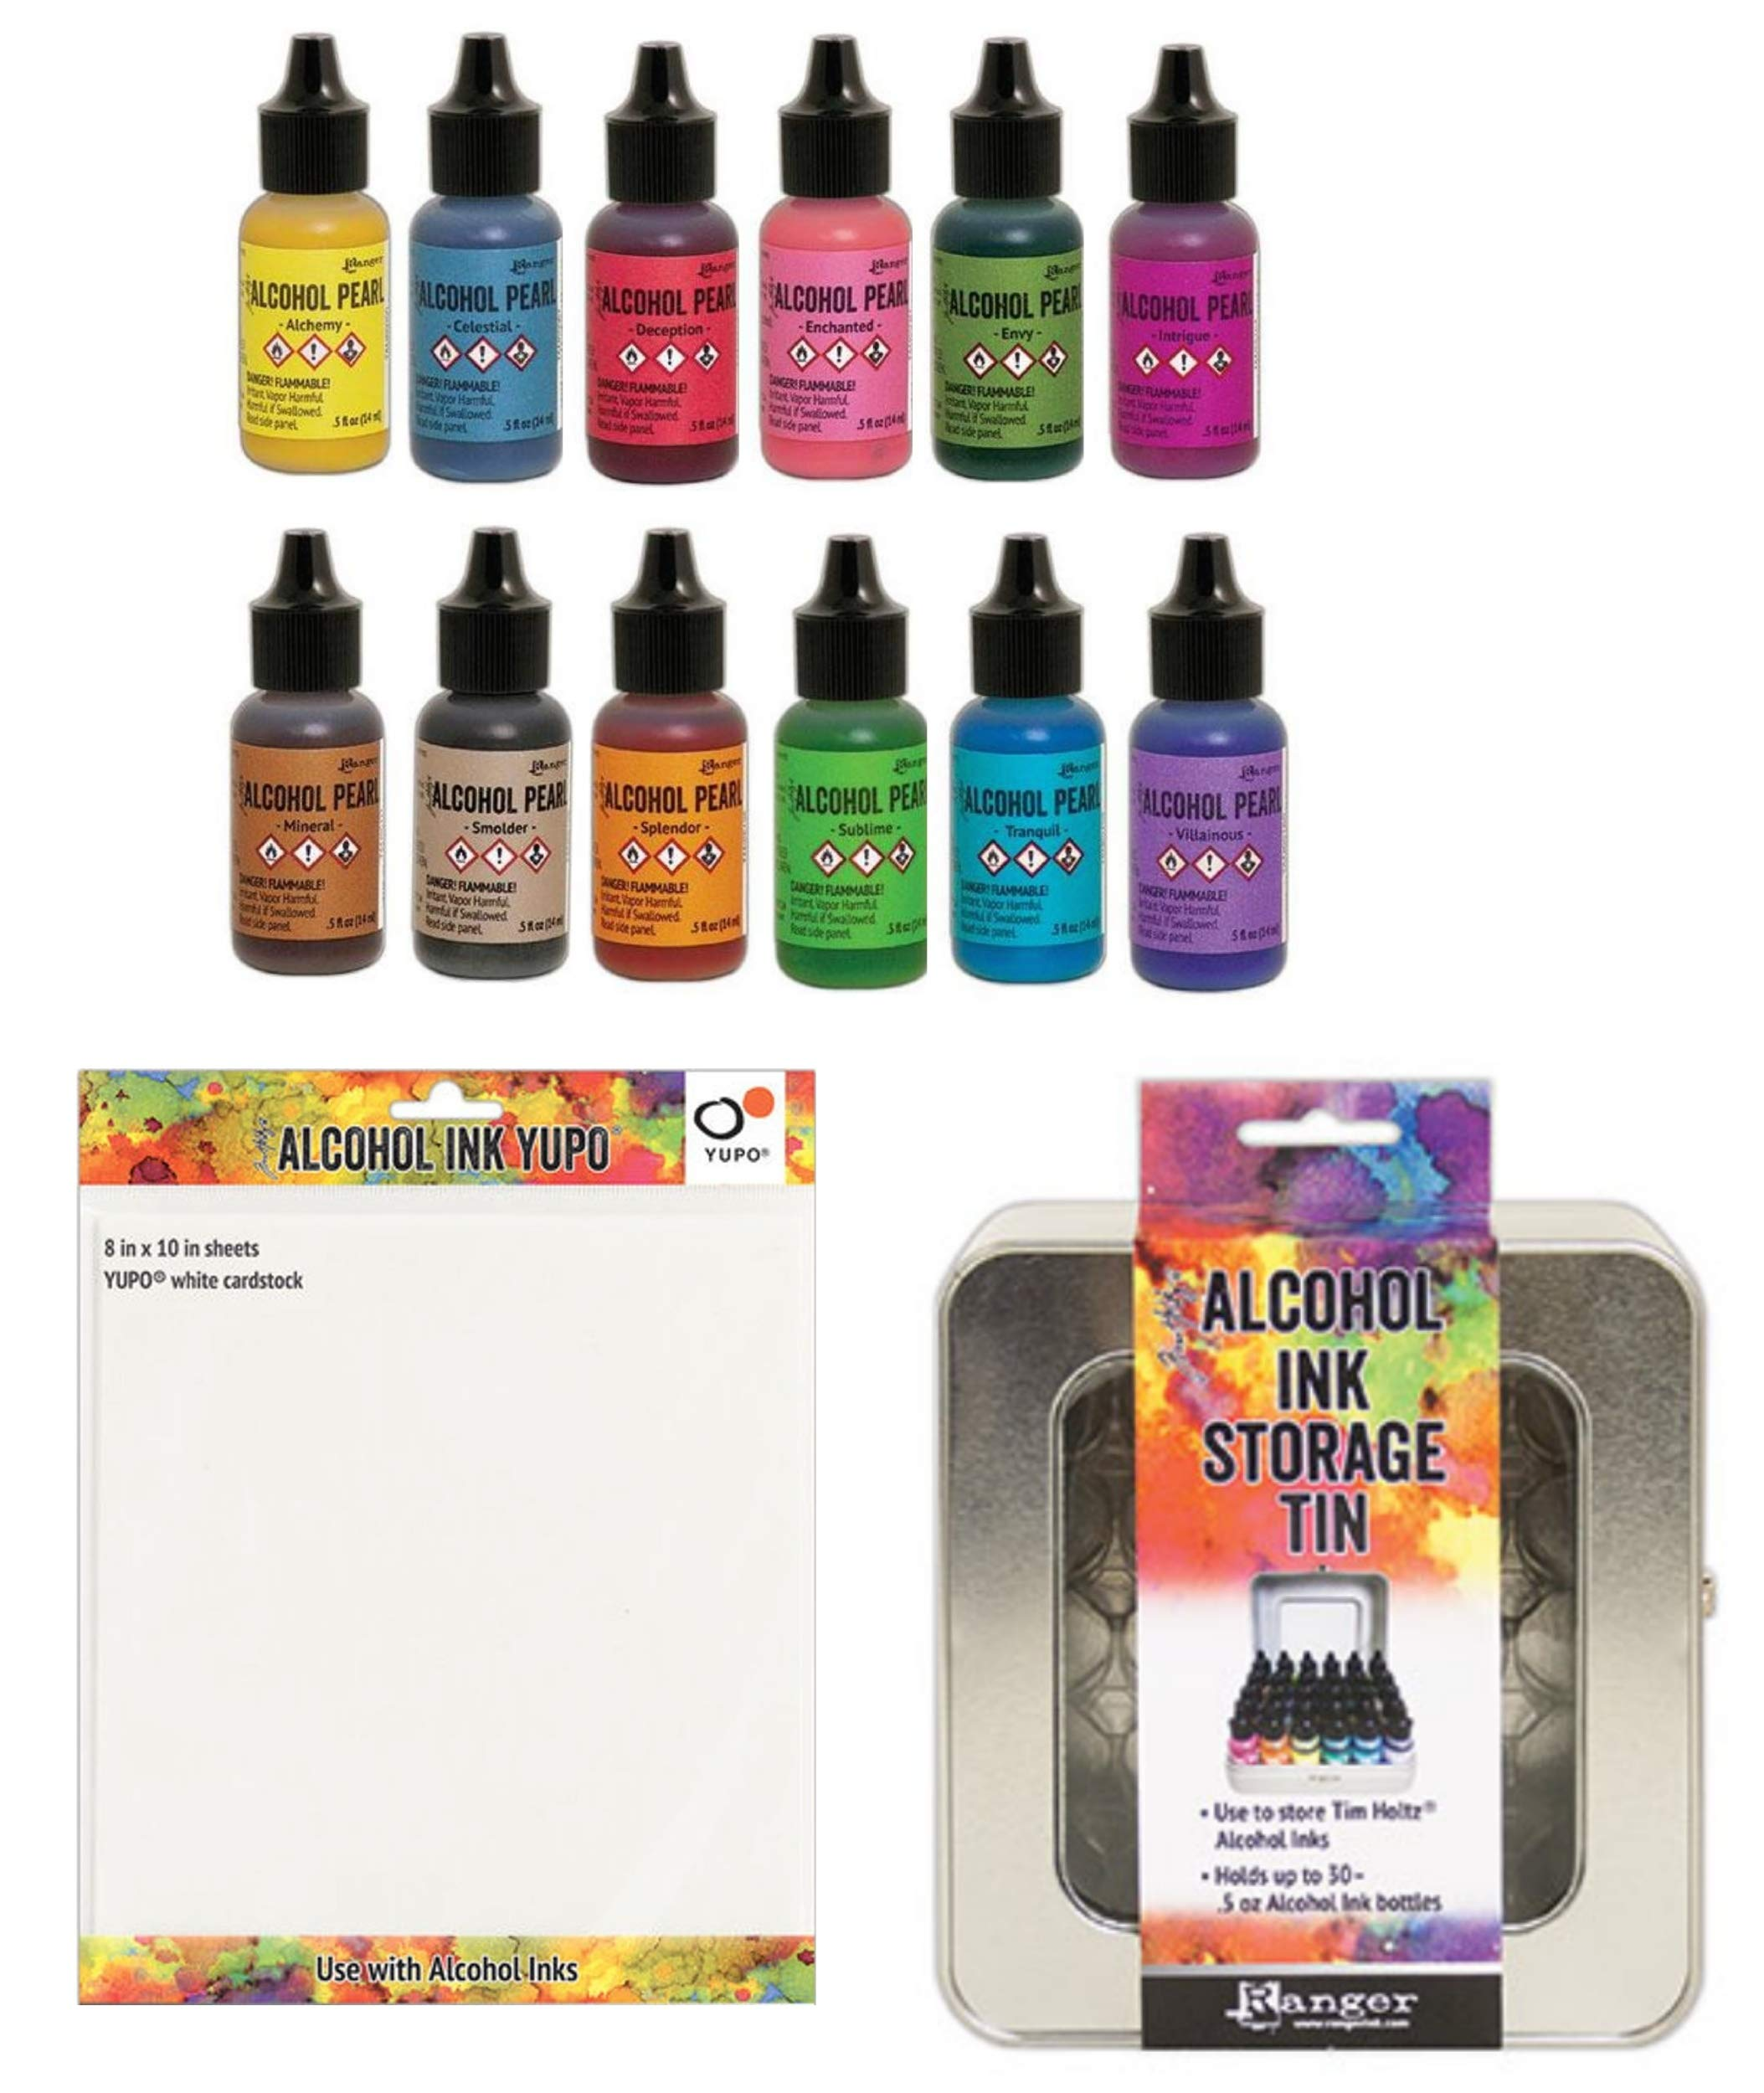 Tim Holtz - 12 Pearl Alcohol Inks, Alcohol Ink Storage Tin, One Sheet of Ranger Yupo 8 inch x10 inch White Cardstock for Making Your Own Color Chart - Bundle of 14 Items